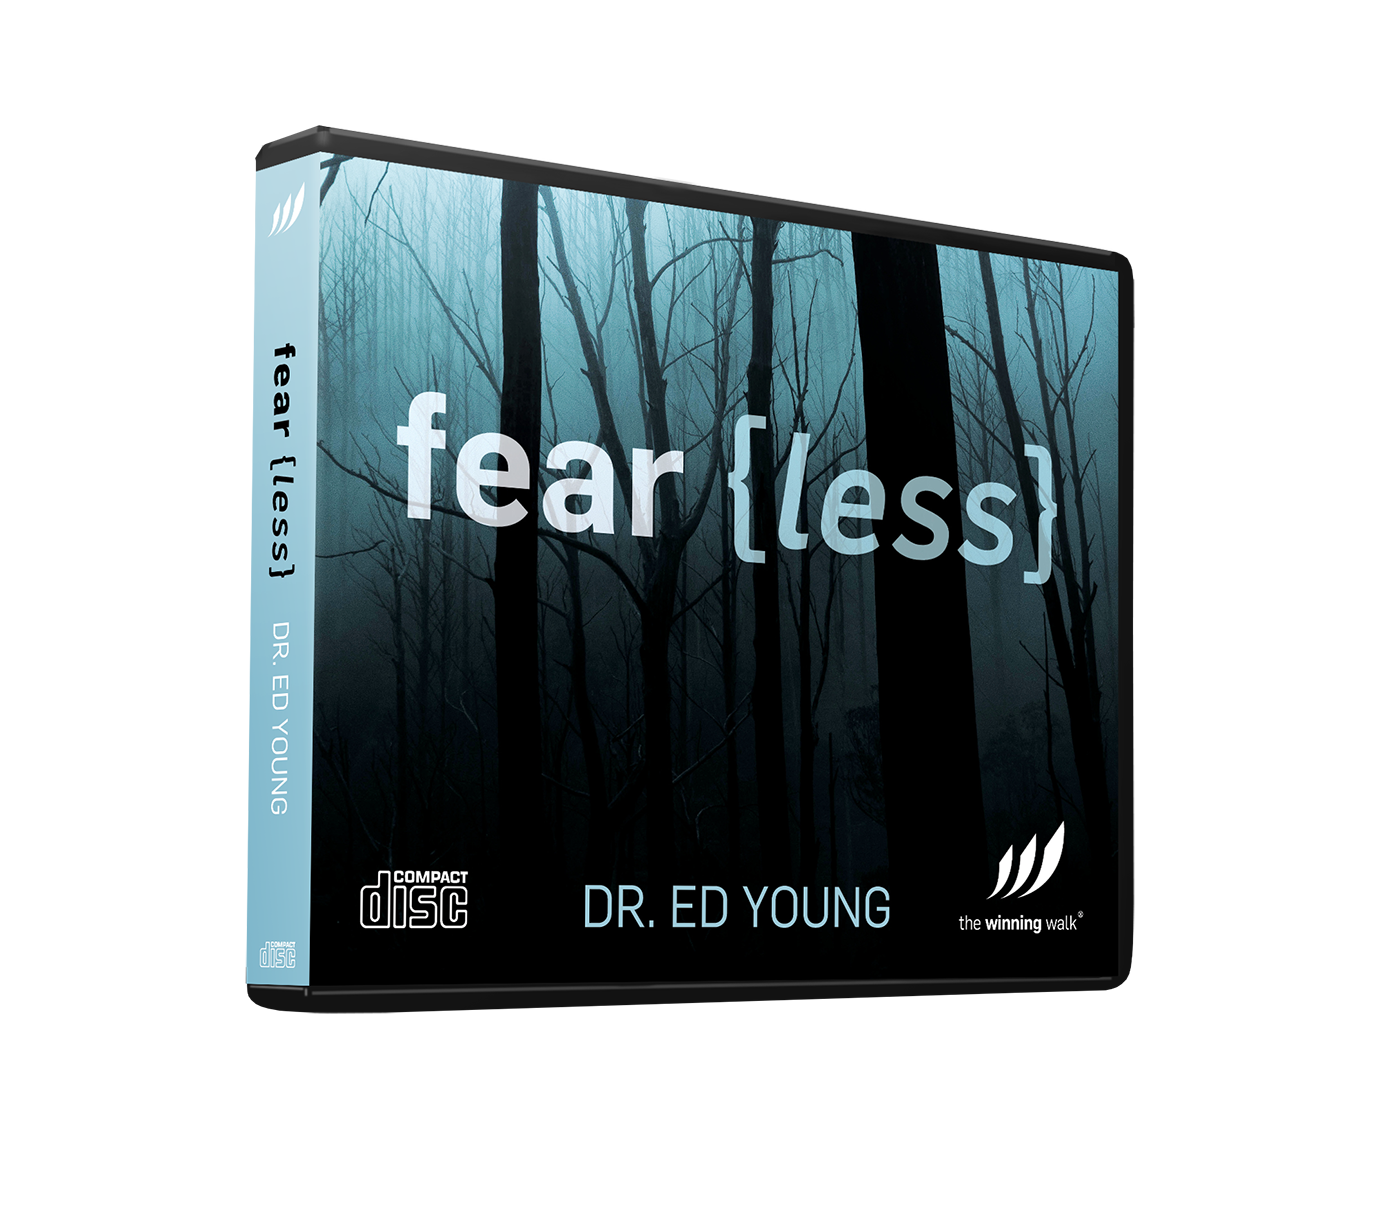 Don't let fear control you—live fearless!